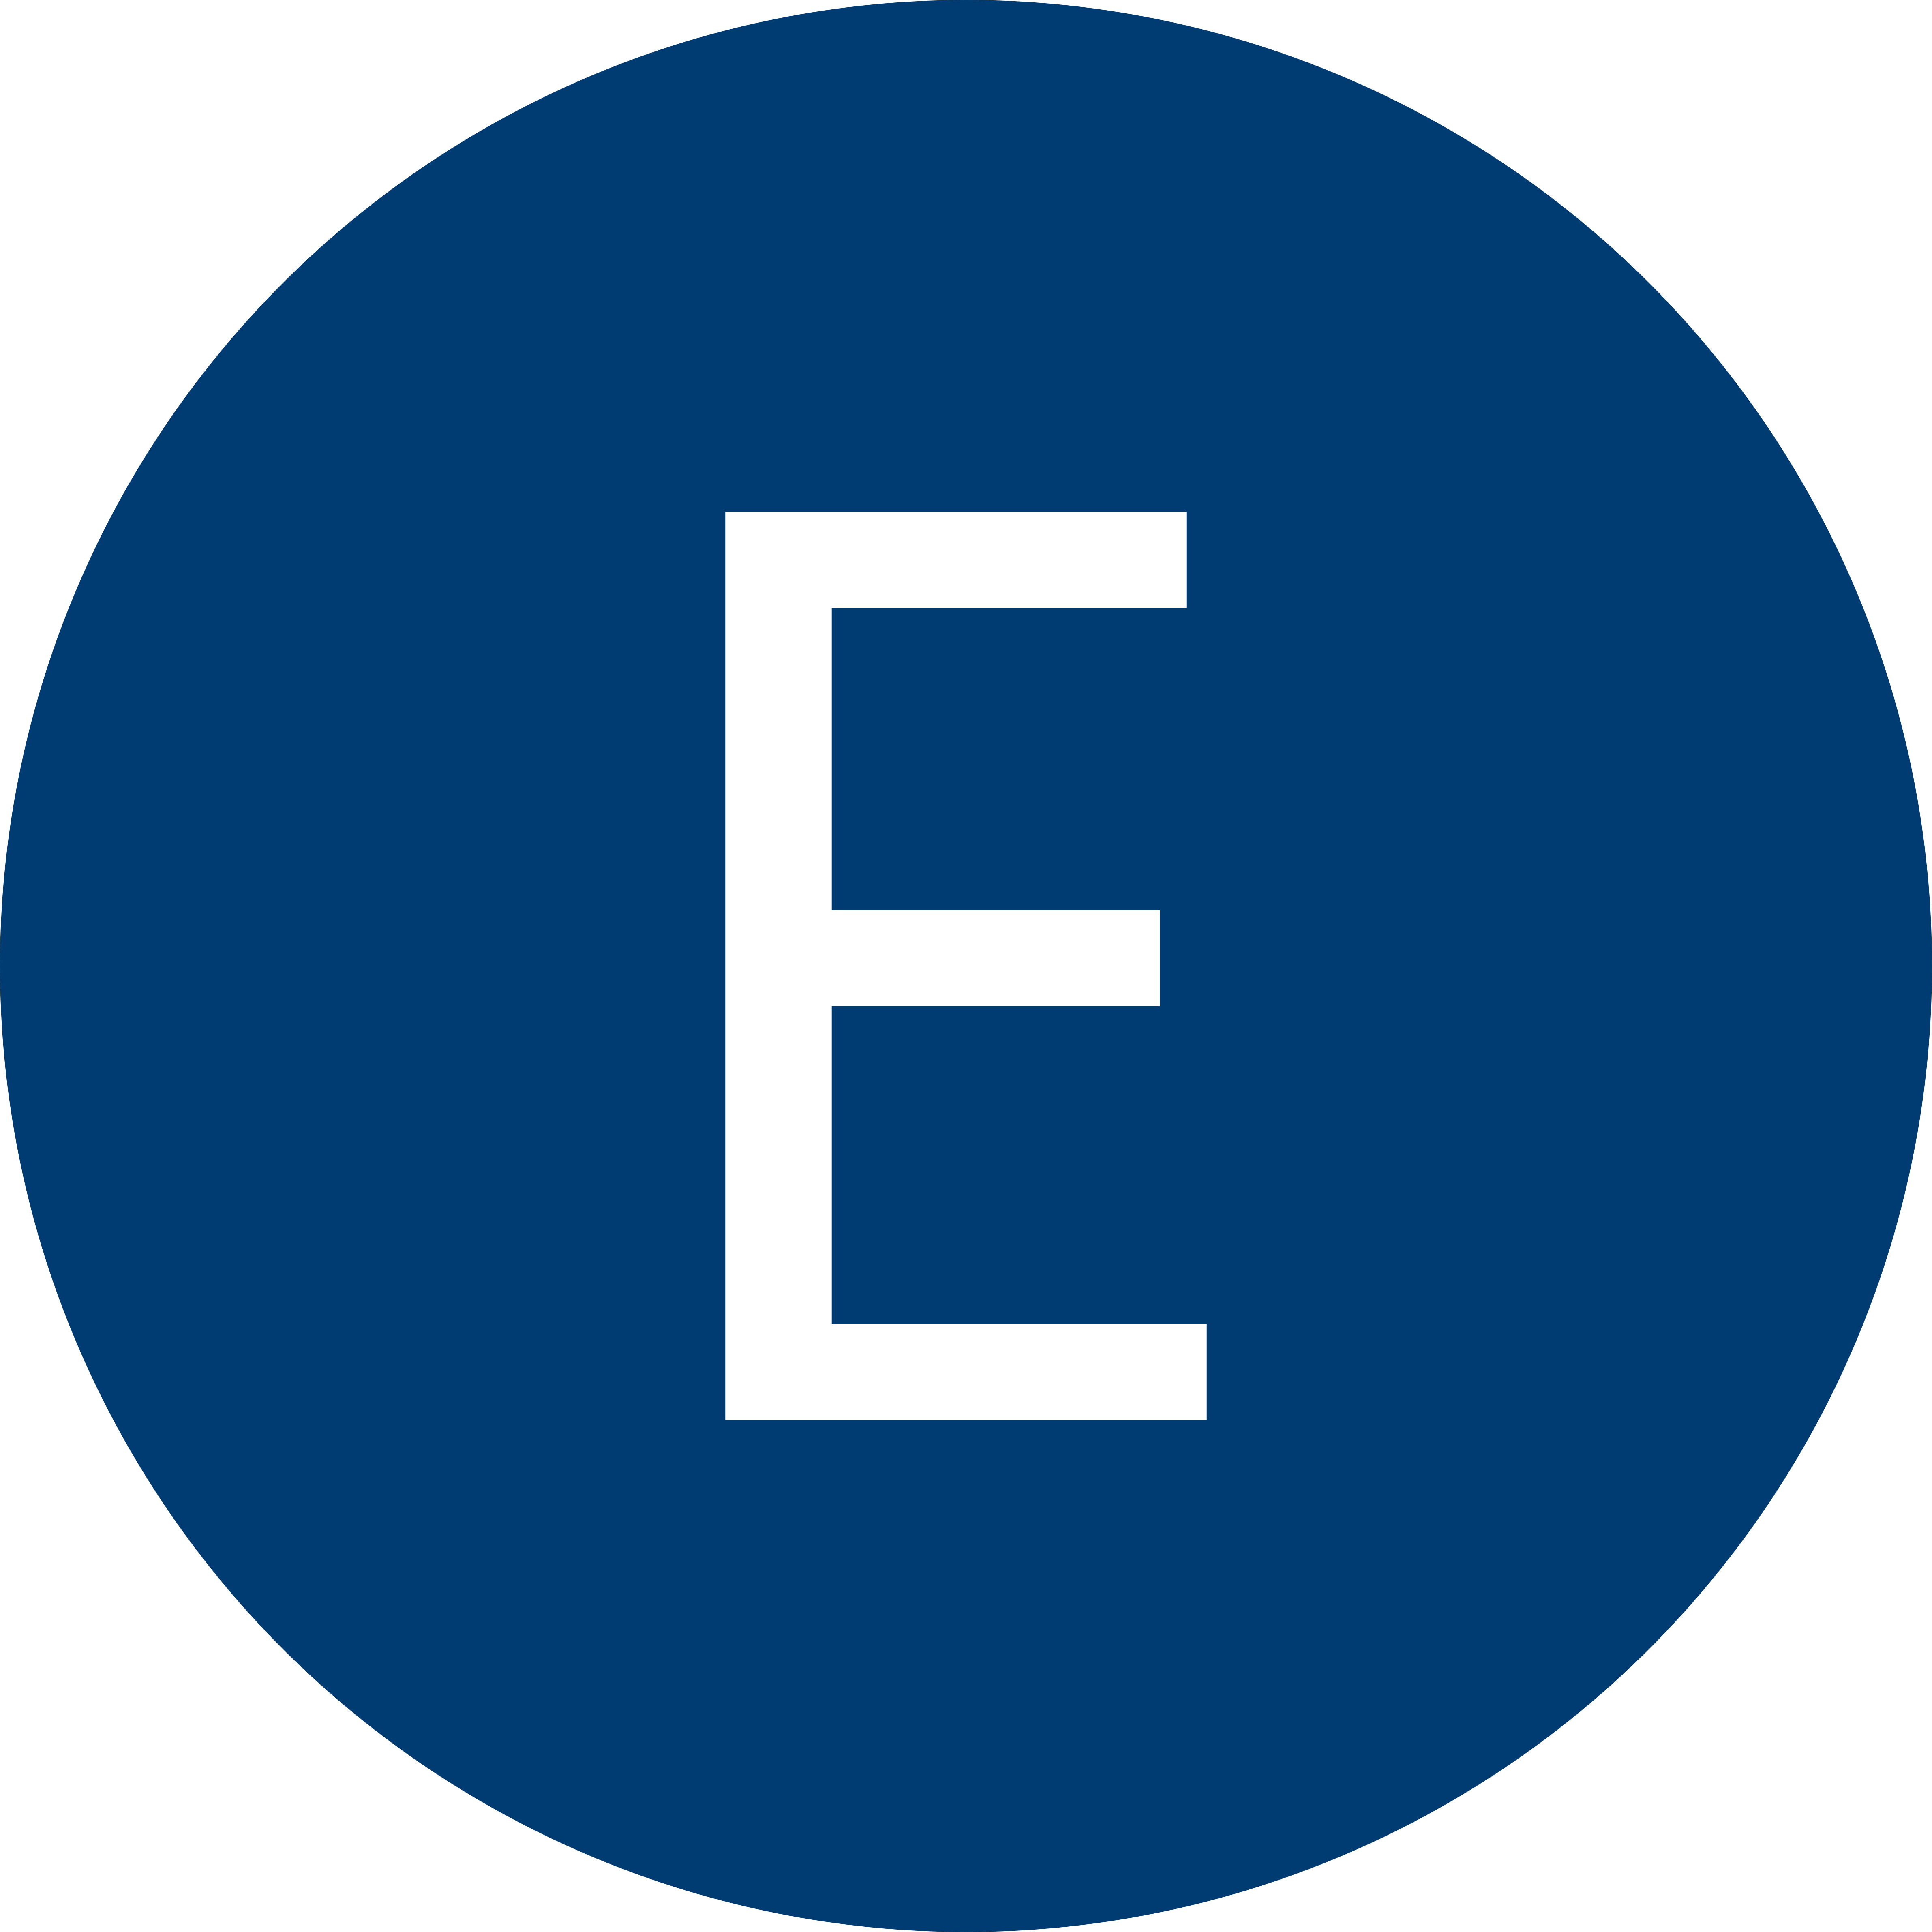 Blue circle with a white letter E inside